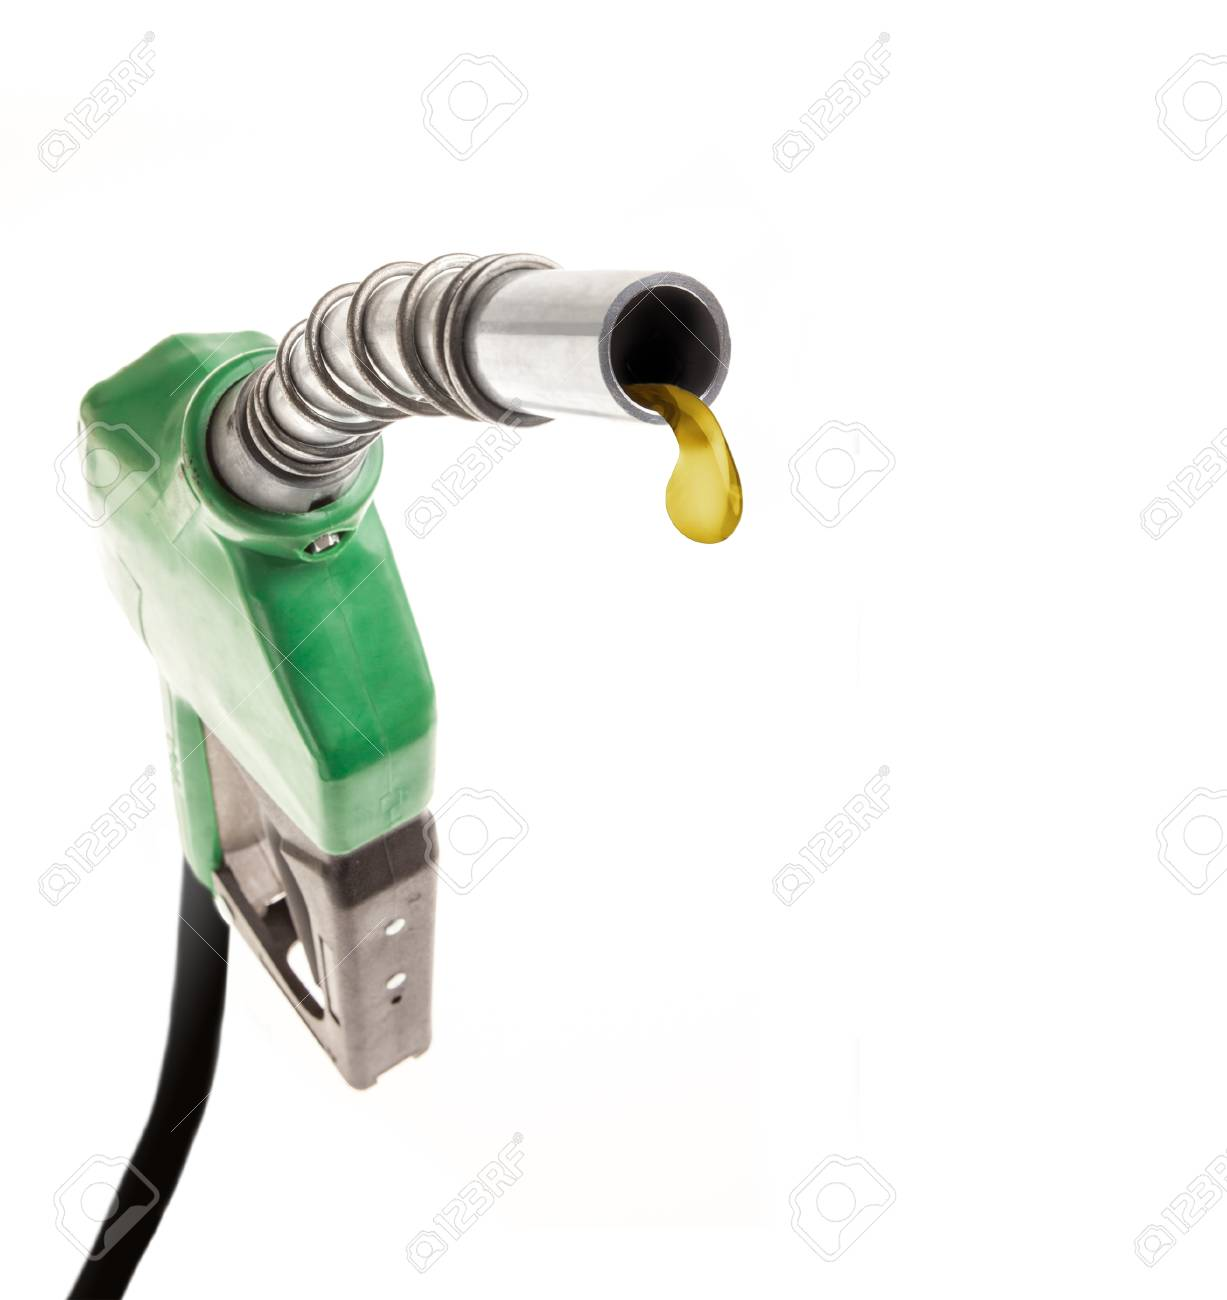 Green gas noozle with one last drop on white background - 85252398